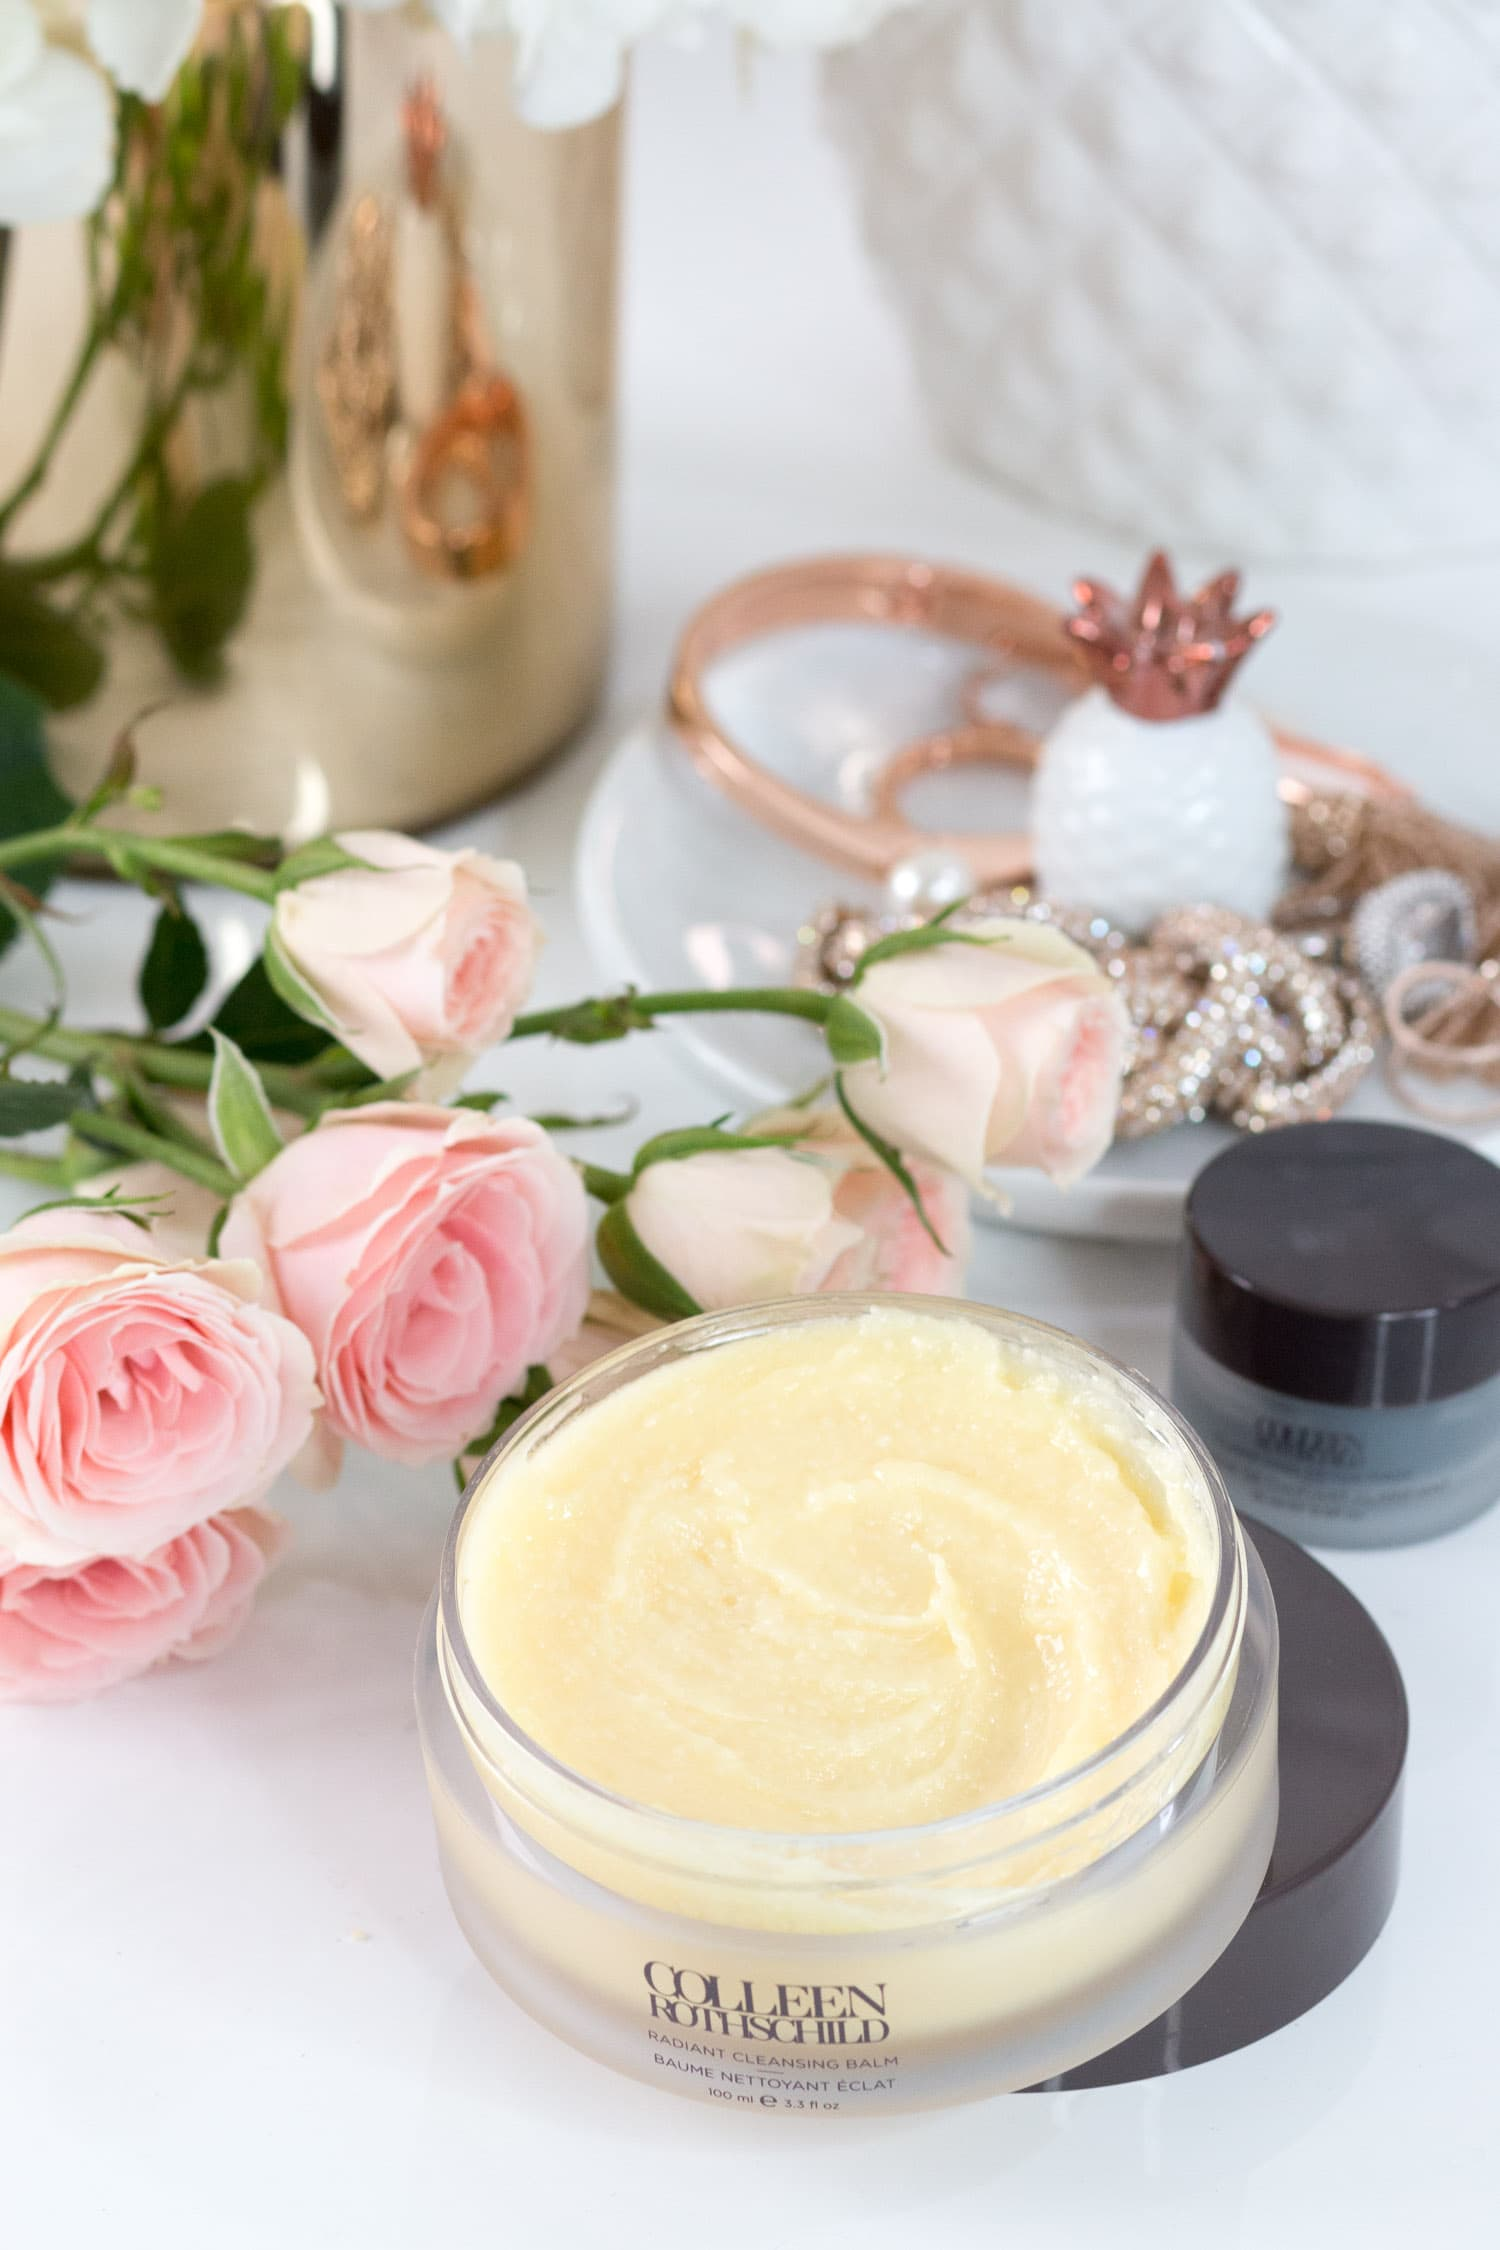 How to use cleansing balm + a review of Colleen Rothschild Radiant Cleansing Balm aka the best oil-based cleansing balm on the market! | The seven skin care products that every woman needs in her beauty routine + the best skin care products from Colleen Rothschild Beauty with Orlando, Florida beauty blogger Ashley Brooke Nicholas